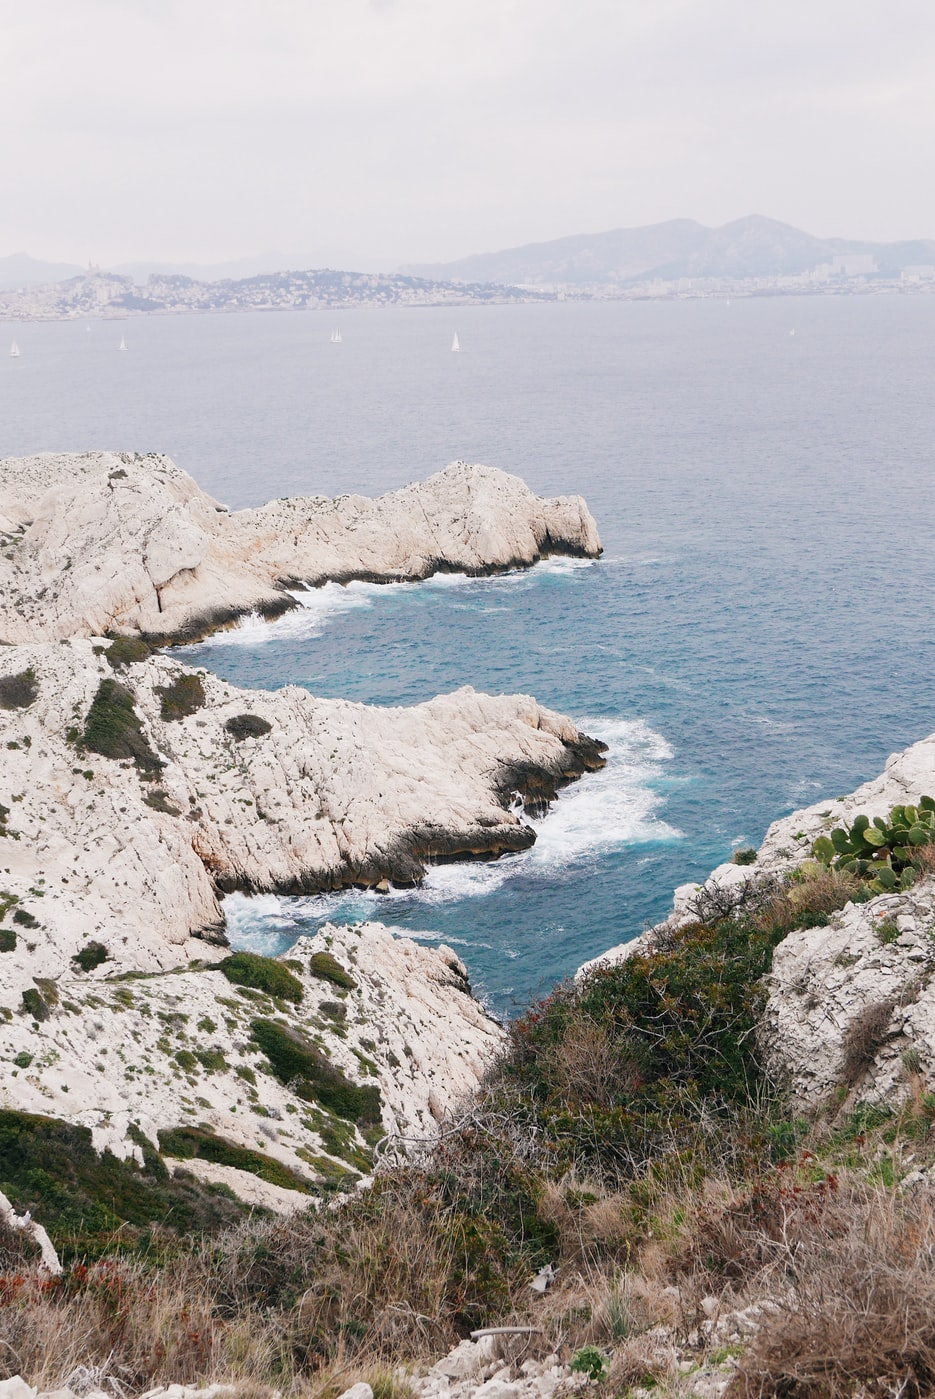 islands off the coast of Marseille, France